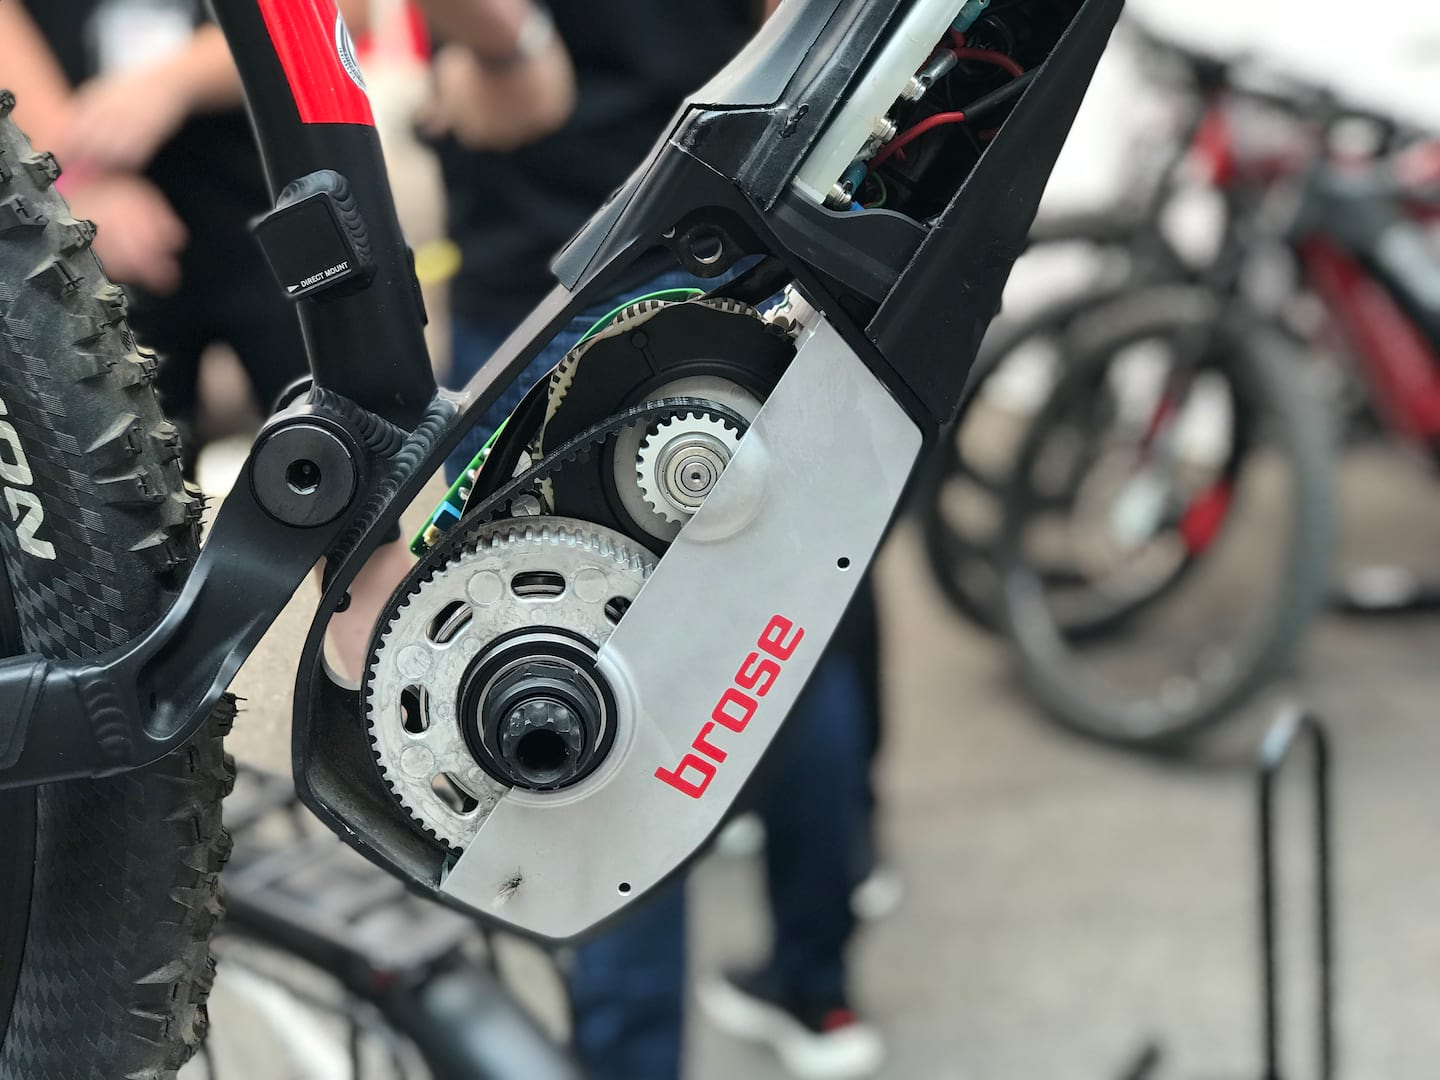 Brose: e-Bike Motors Get Smaller And Quieter - Singletrack Magazine